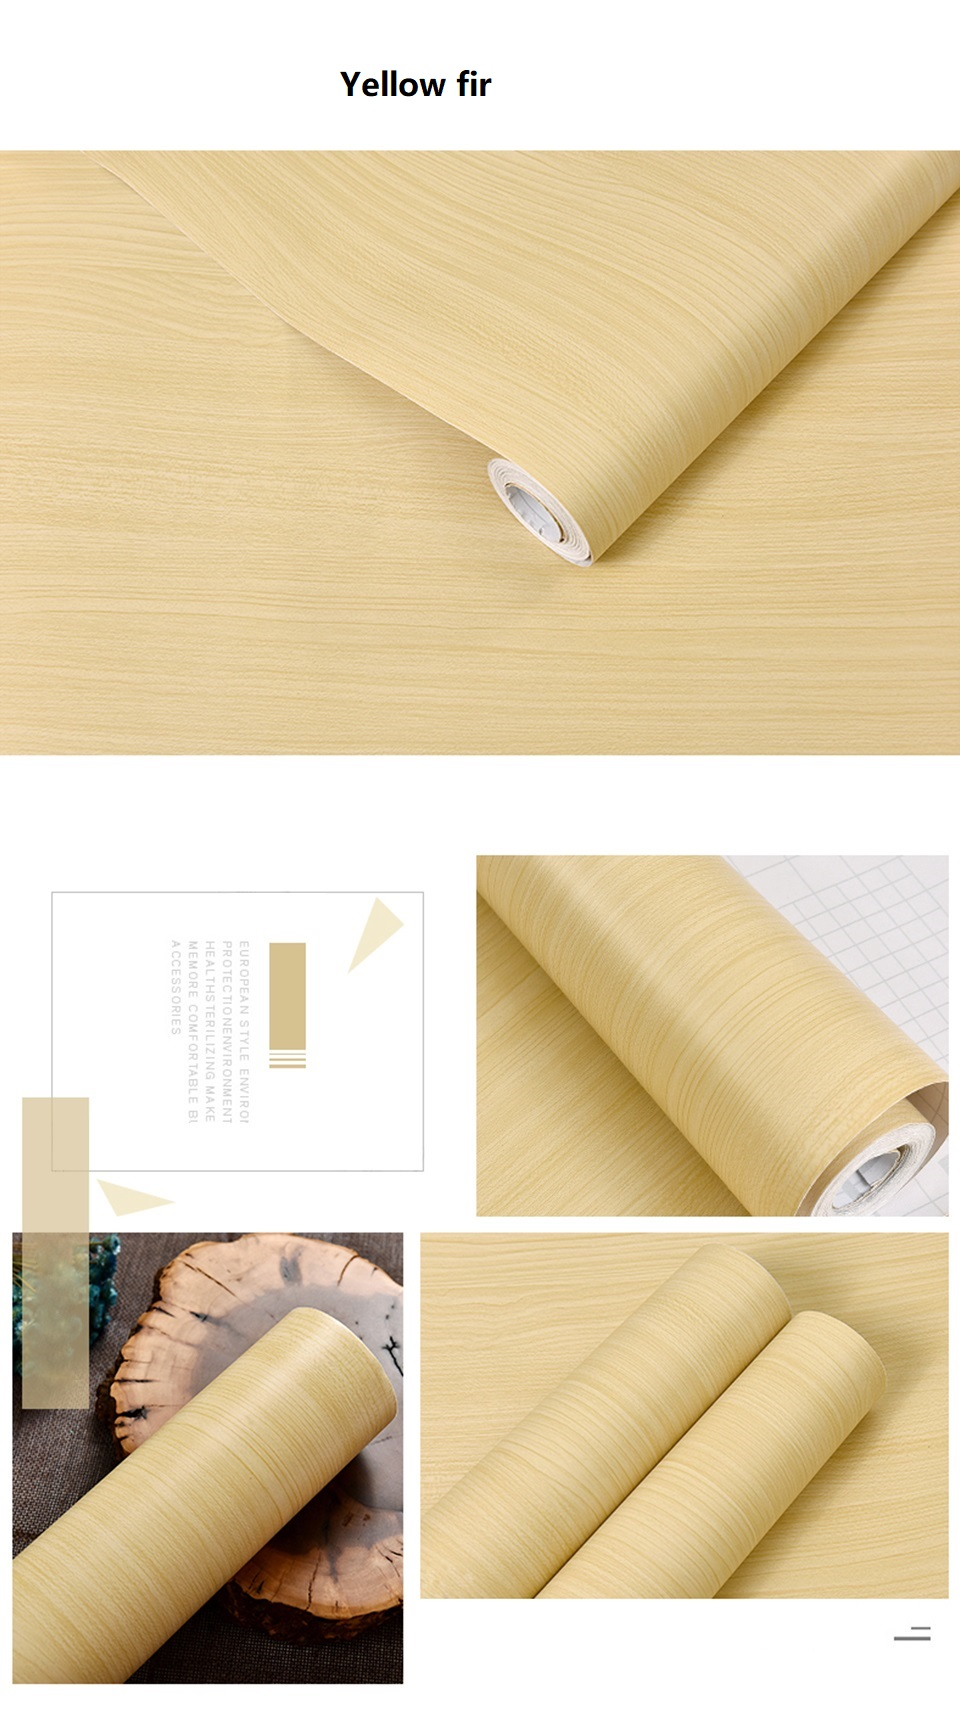 PVC Vinyl Wood Grain Contact Paper for Kitchen Cabinets Table Sticker Waterproof Self adhesive Wallpaper Phone Case Stickers HTB1yb8Fh7KWBuNjy1zjq6AOypXaD